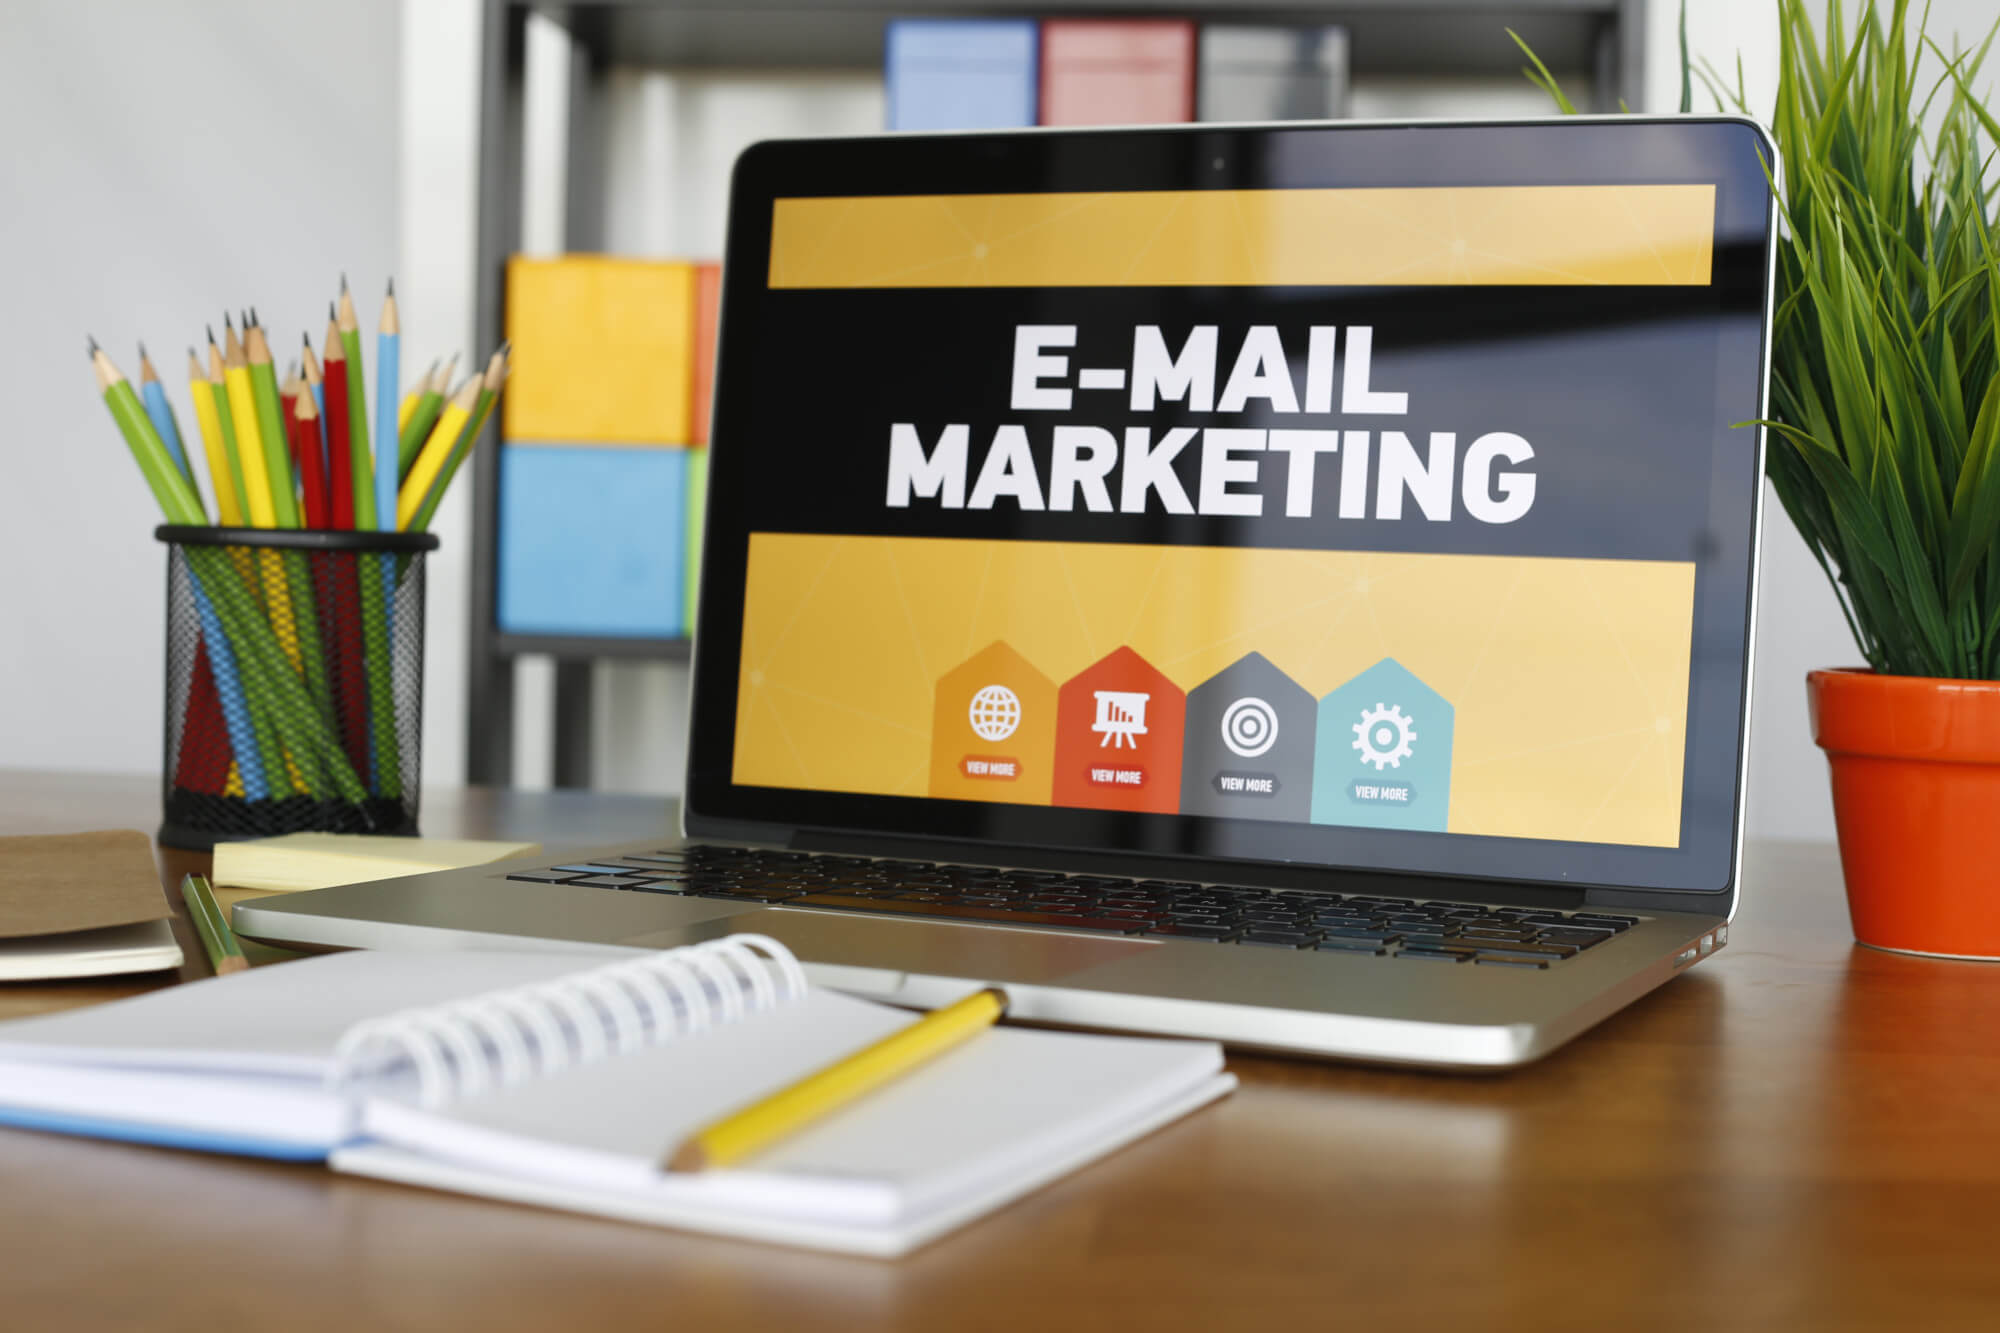 chien-dich-email-marketing